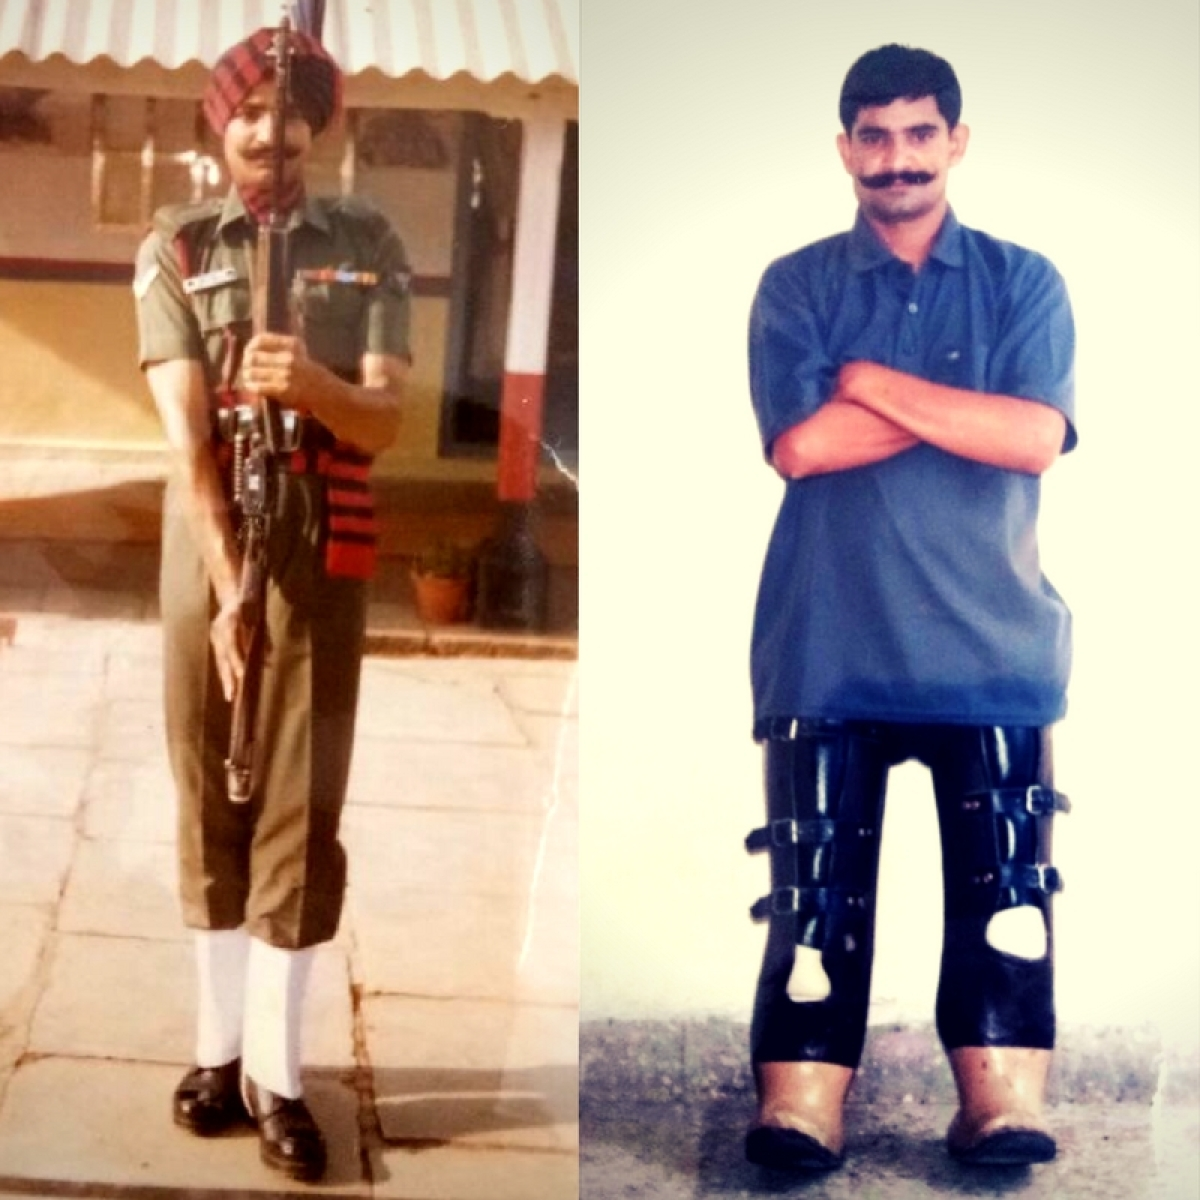 We Asked For Bullets, Not Bread: The Story of a Kargil War Hero